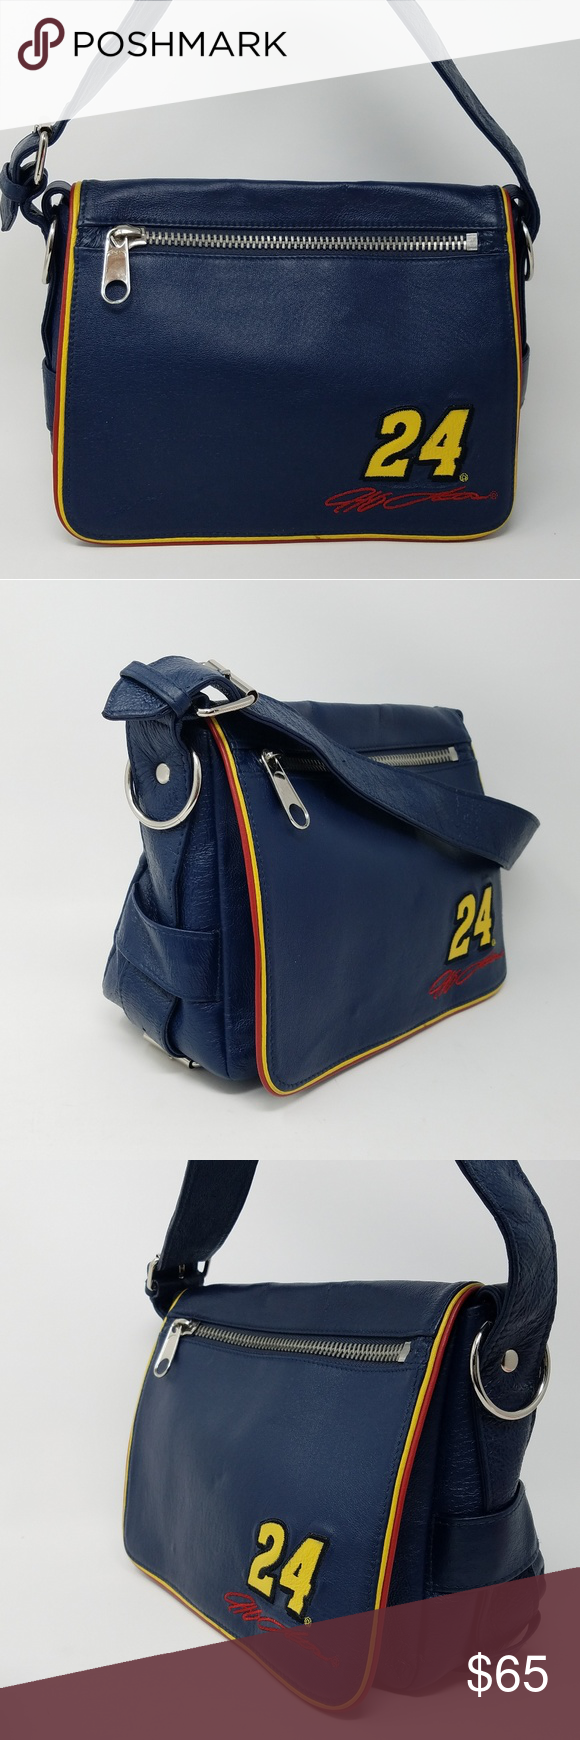 Wilsons Leather jeff Gordon purse 24 Wilsons leather